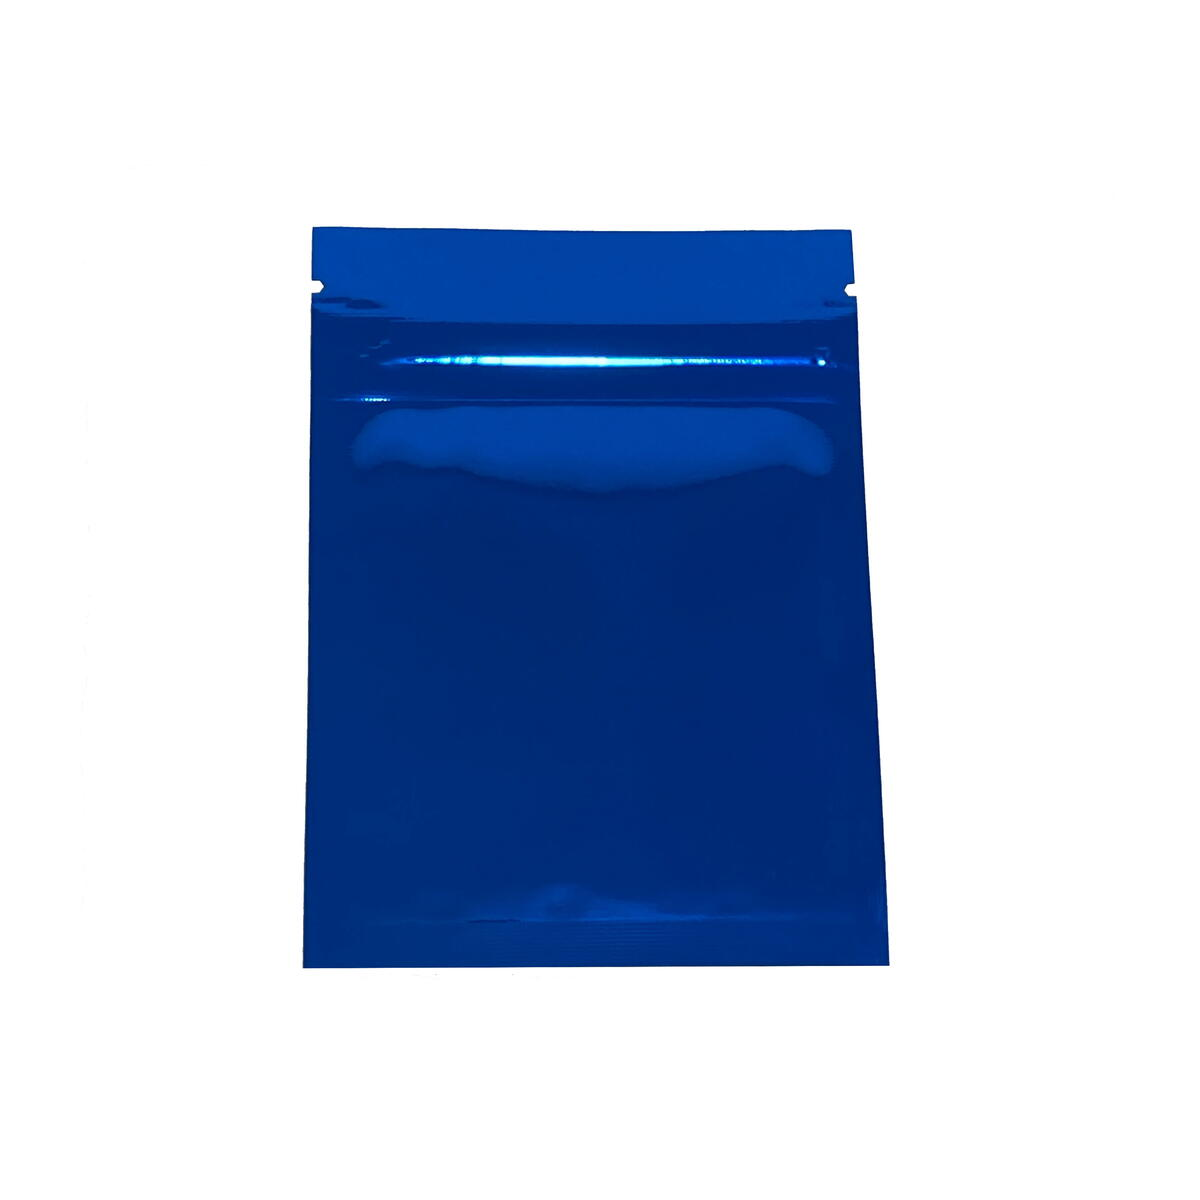 "Smell Proof Flat Ziplock Double-Sided Reusable Mylar Foil Storage Bags 3x4"" (Glossy Blue)"